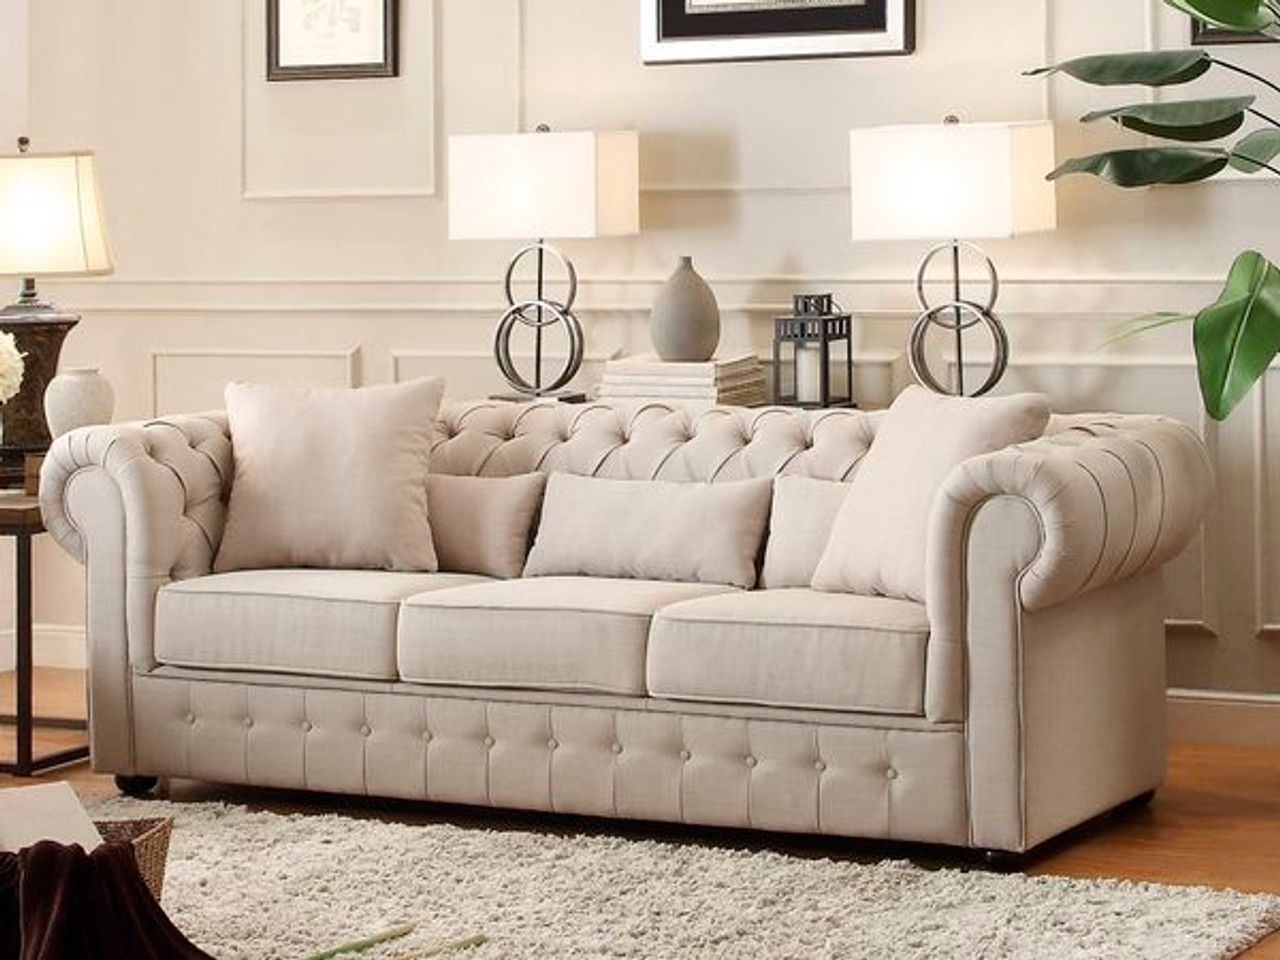 Homelegance Grand Chesterfield Sofa Upholstered Button Tufted Fabric ...